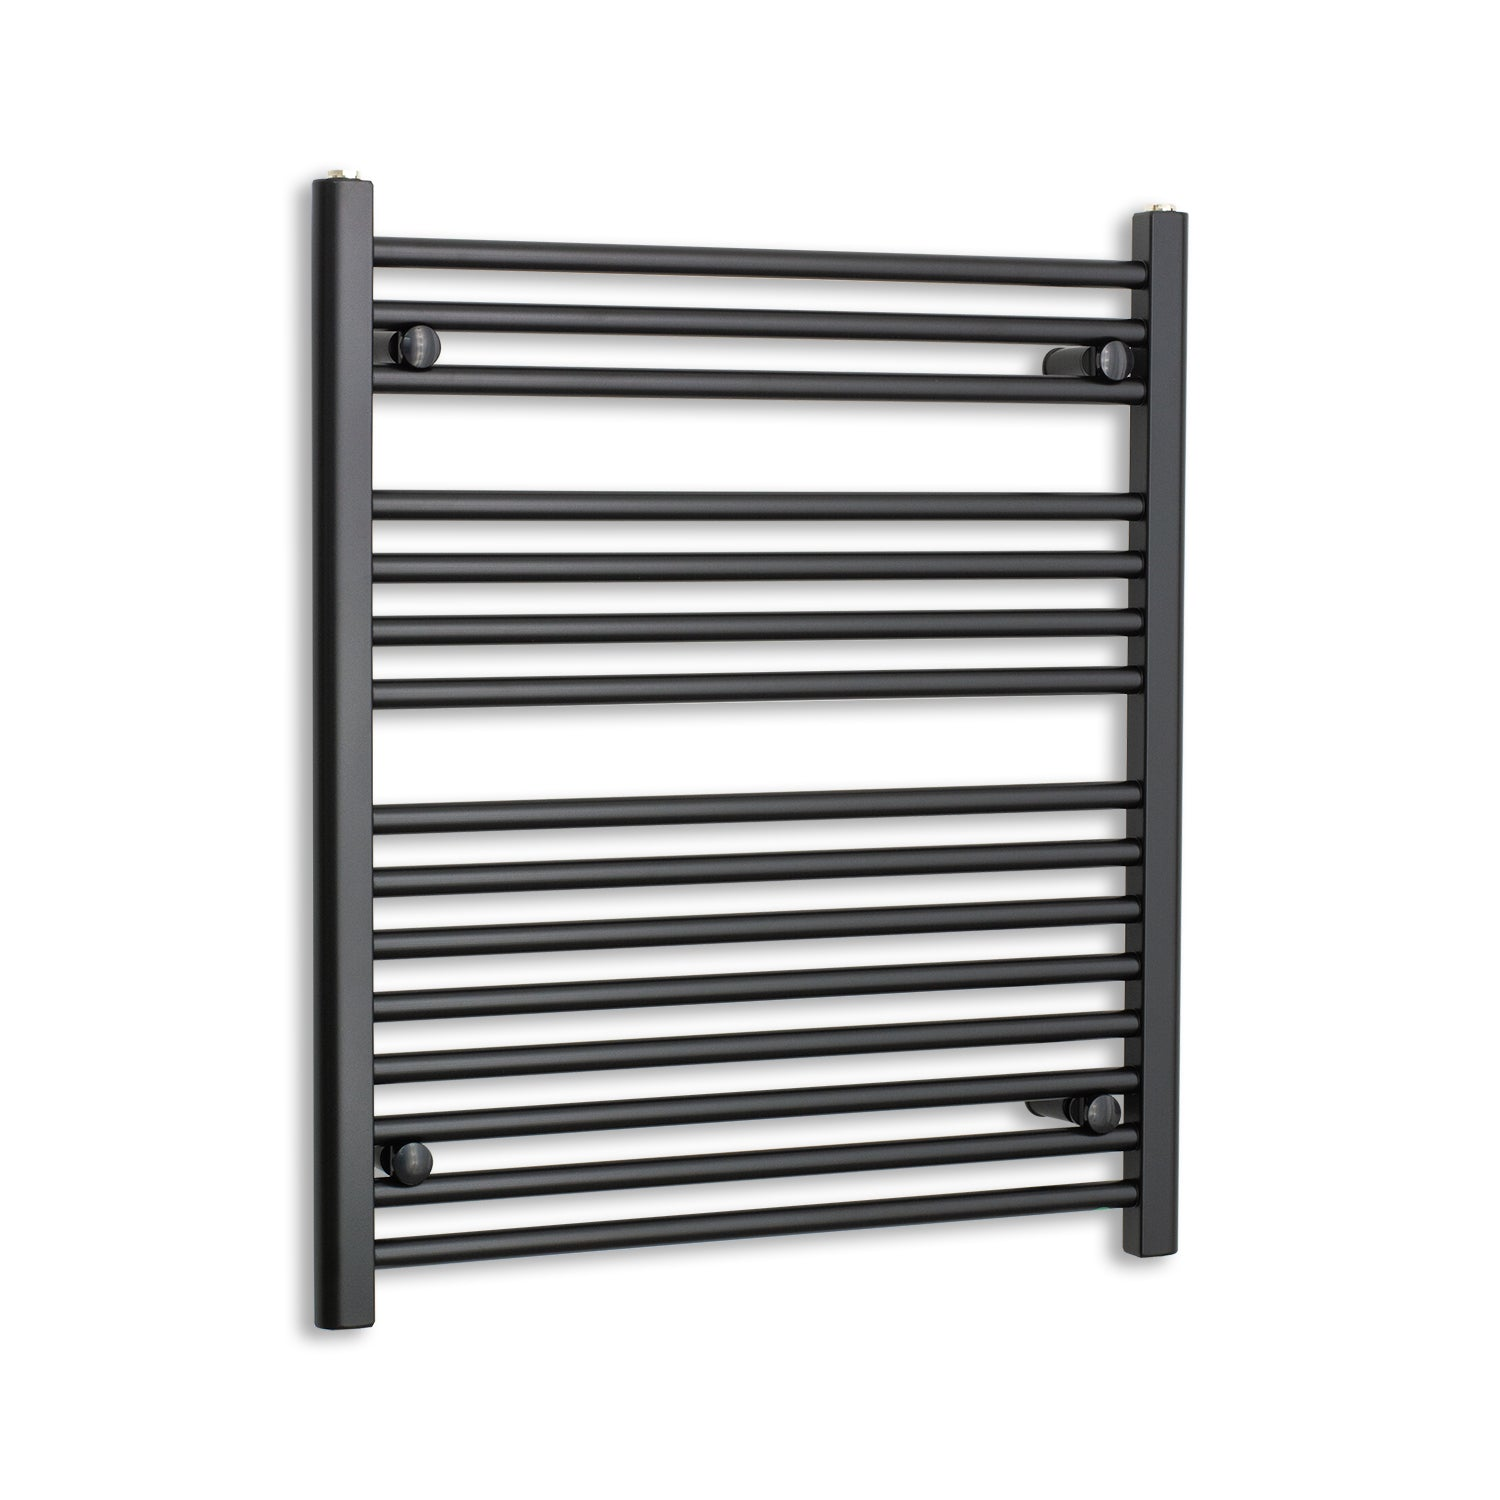 700mm Wide 800mm High Black Towel Rail Radiator